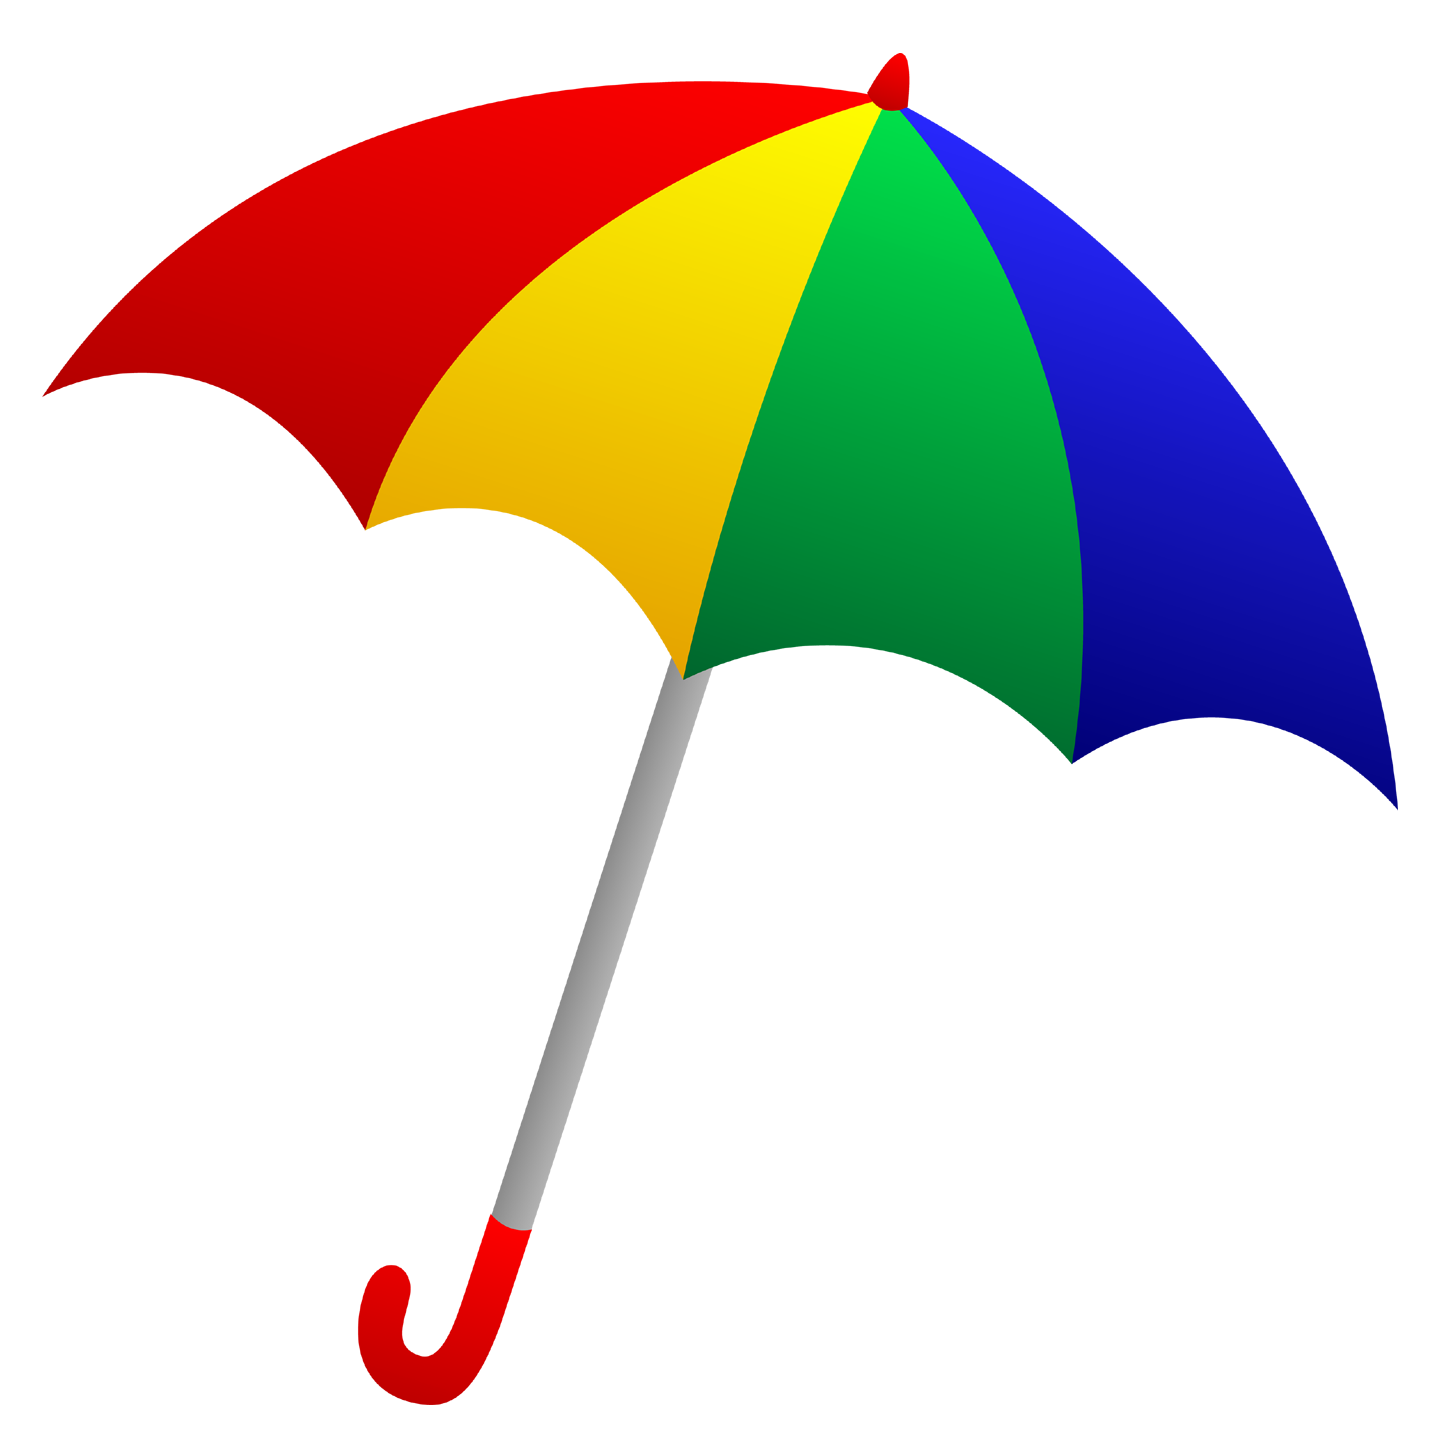 Umbrella clipart clear background. Transparent pencil and in